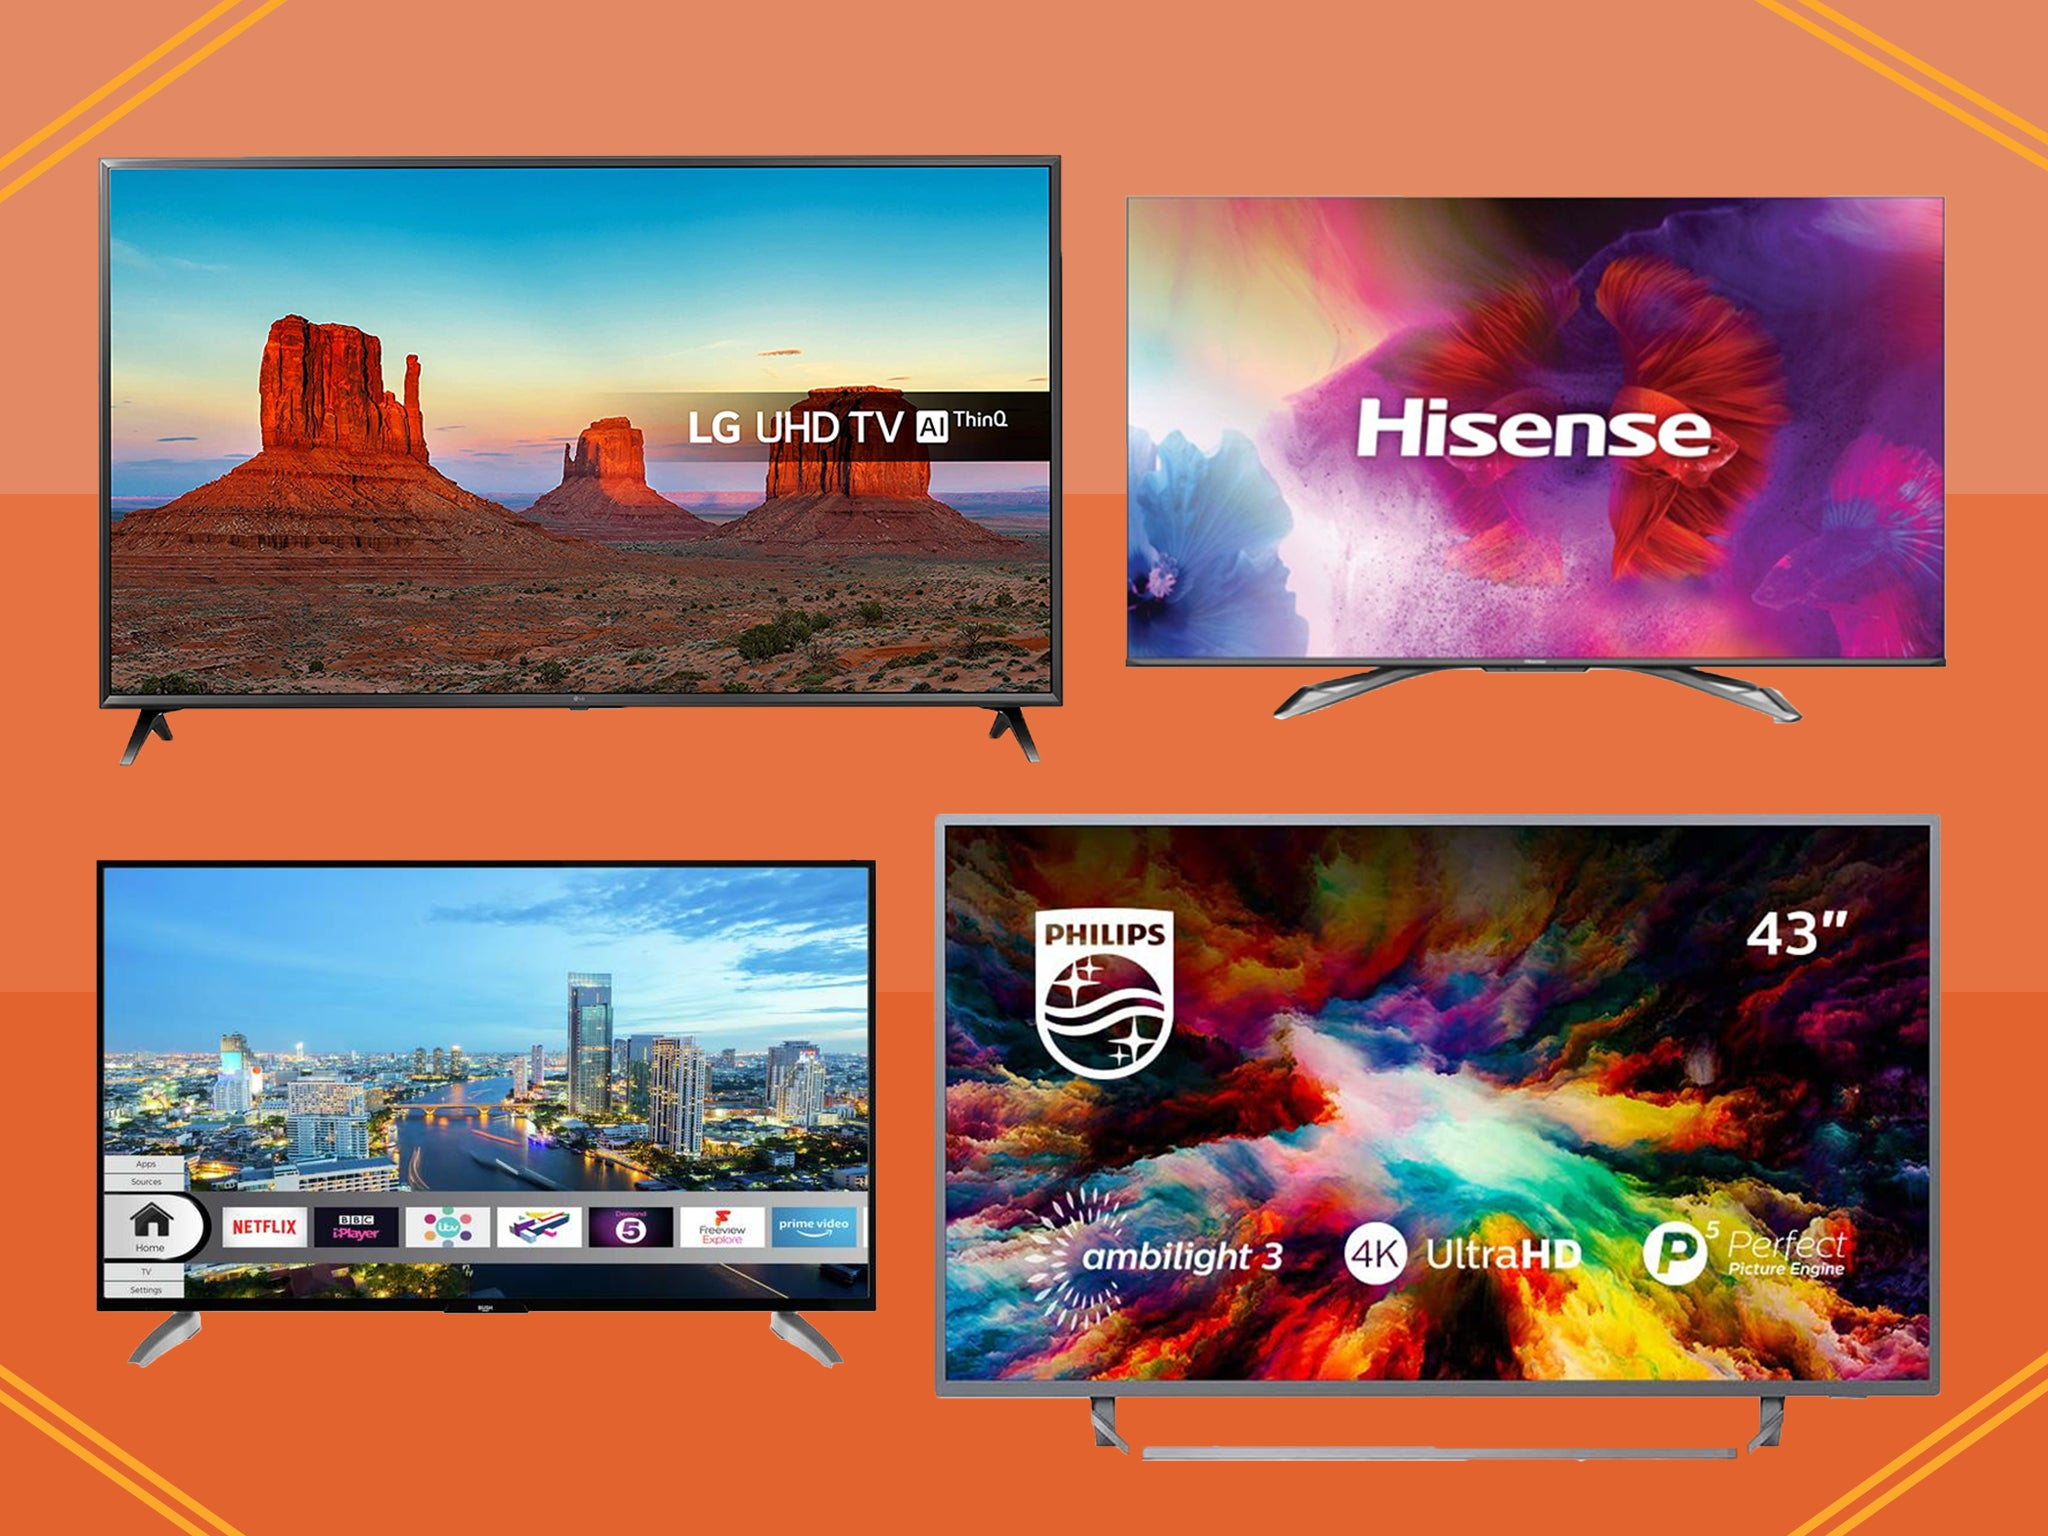 Best Amazon Prime Day Tv Deals 2020 Panasonic Lg Phillips And More The Independent